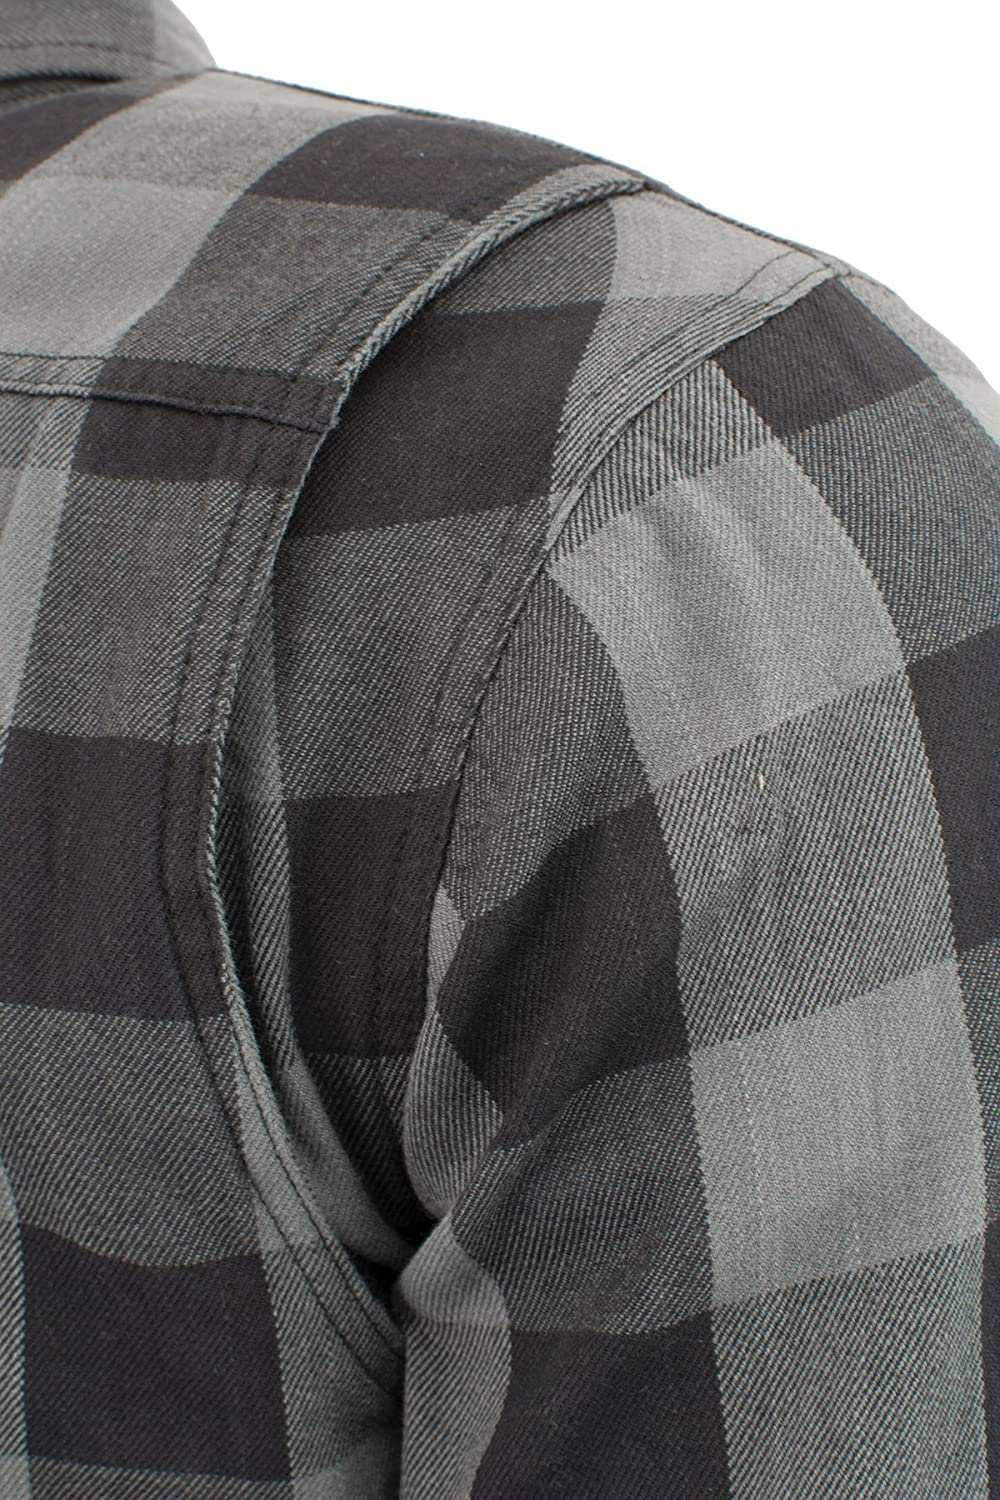 Milwaukee Performance-Mens Armored Checkered Flannel Biker Shirt w//Aramid by DuPont BLK//GREY1630-3X